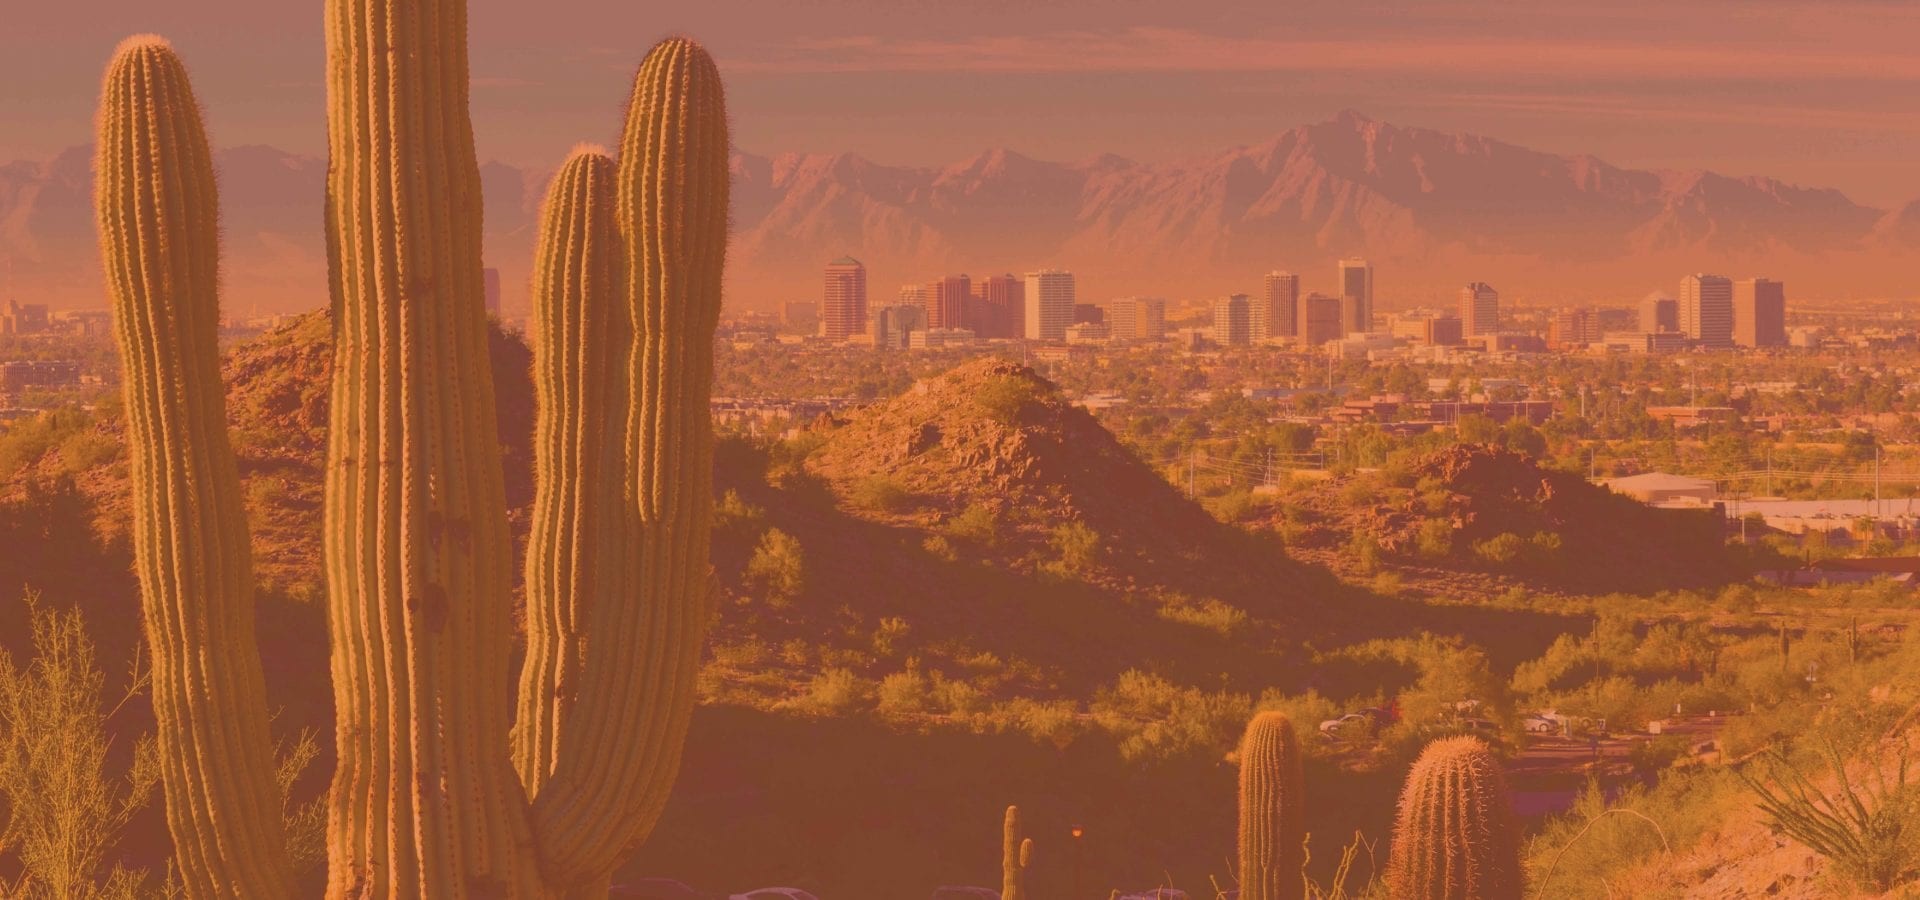 cactus with phoenix skyline in the background